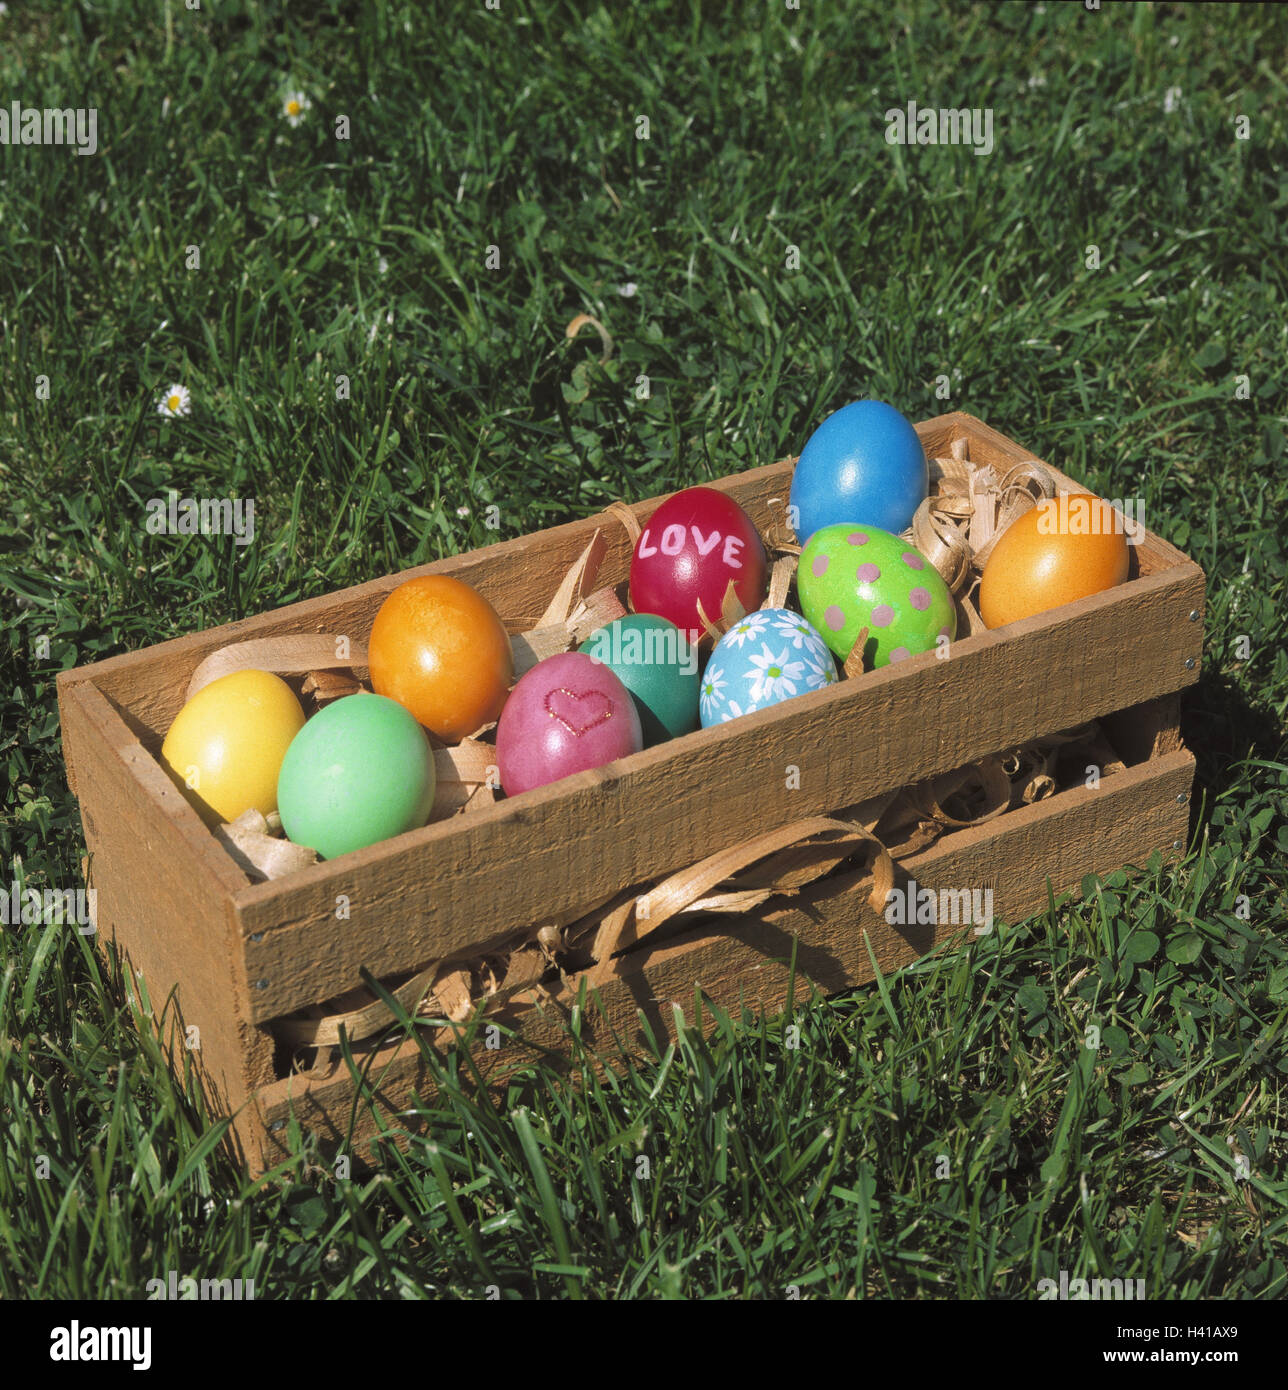 Meadow, wooden box, Easter eggs, Easter, Easter feast, season, spring, spring, traditions, Easter custom, tradition, Stock Photo